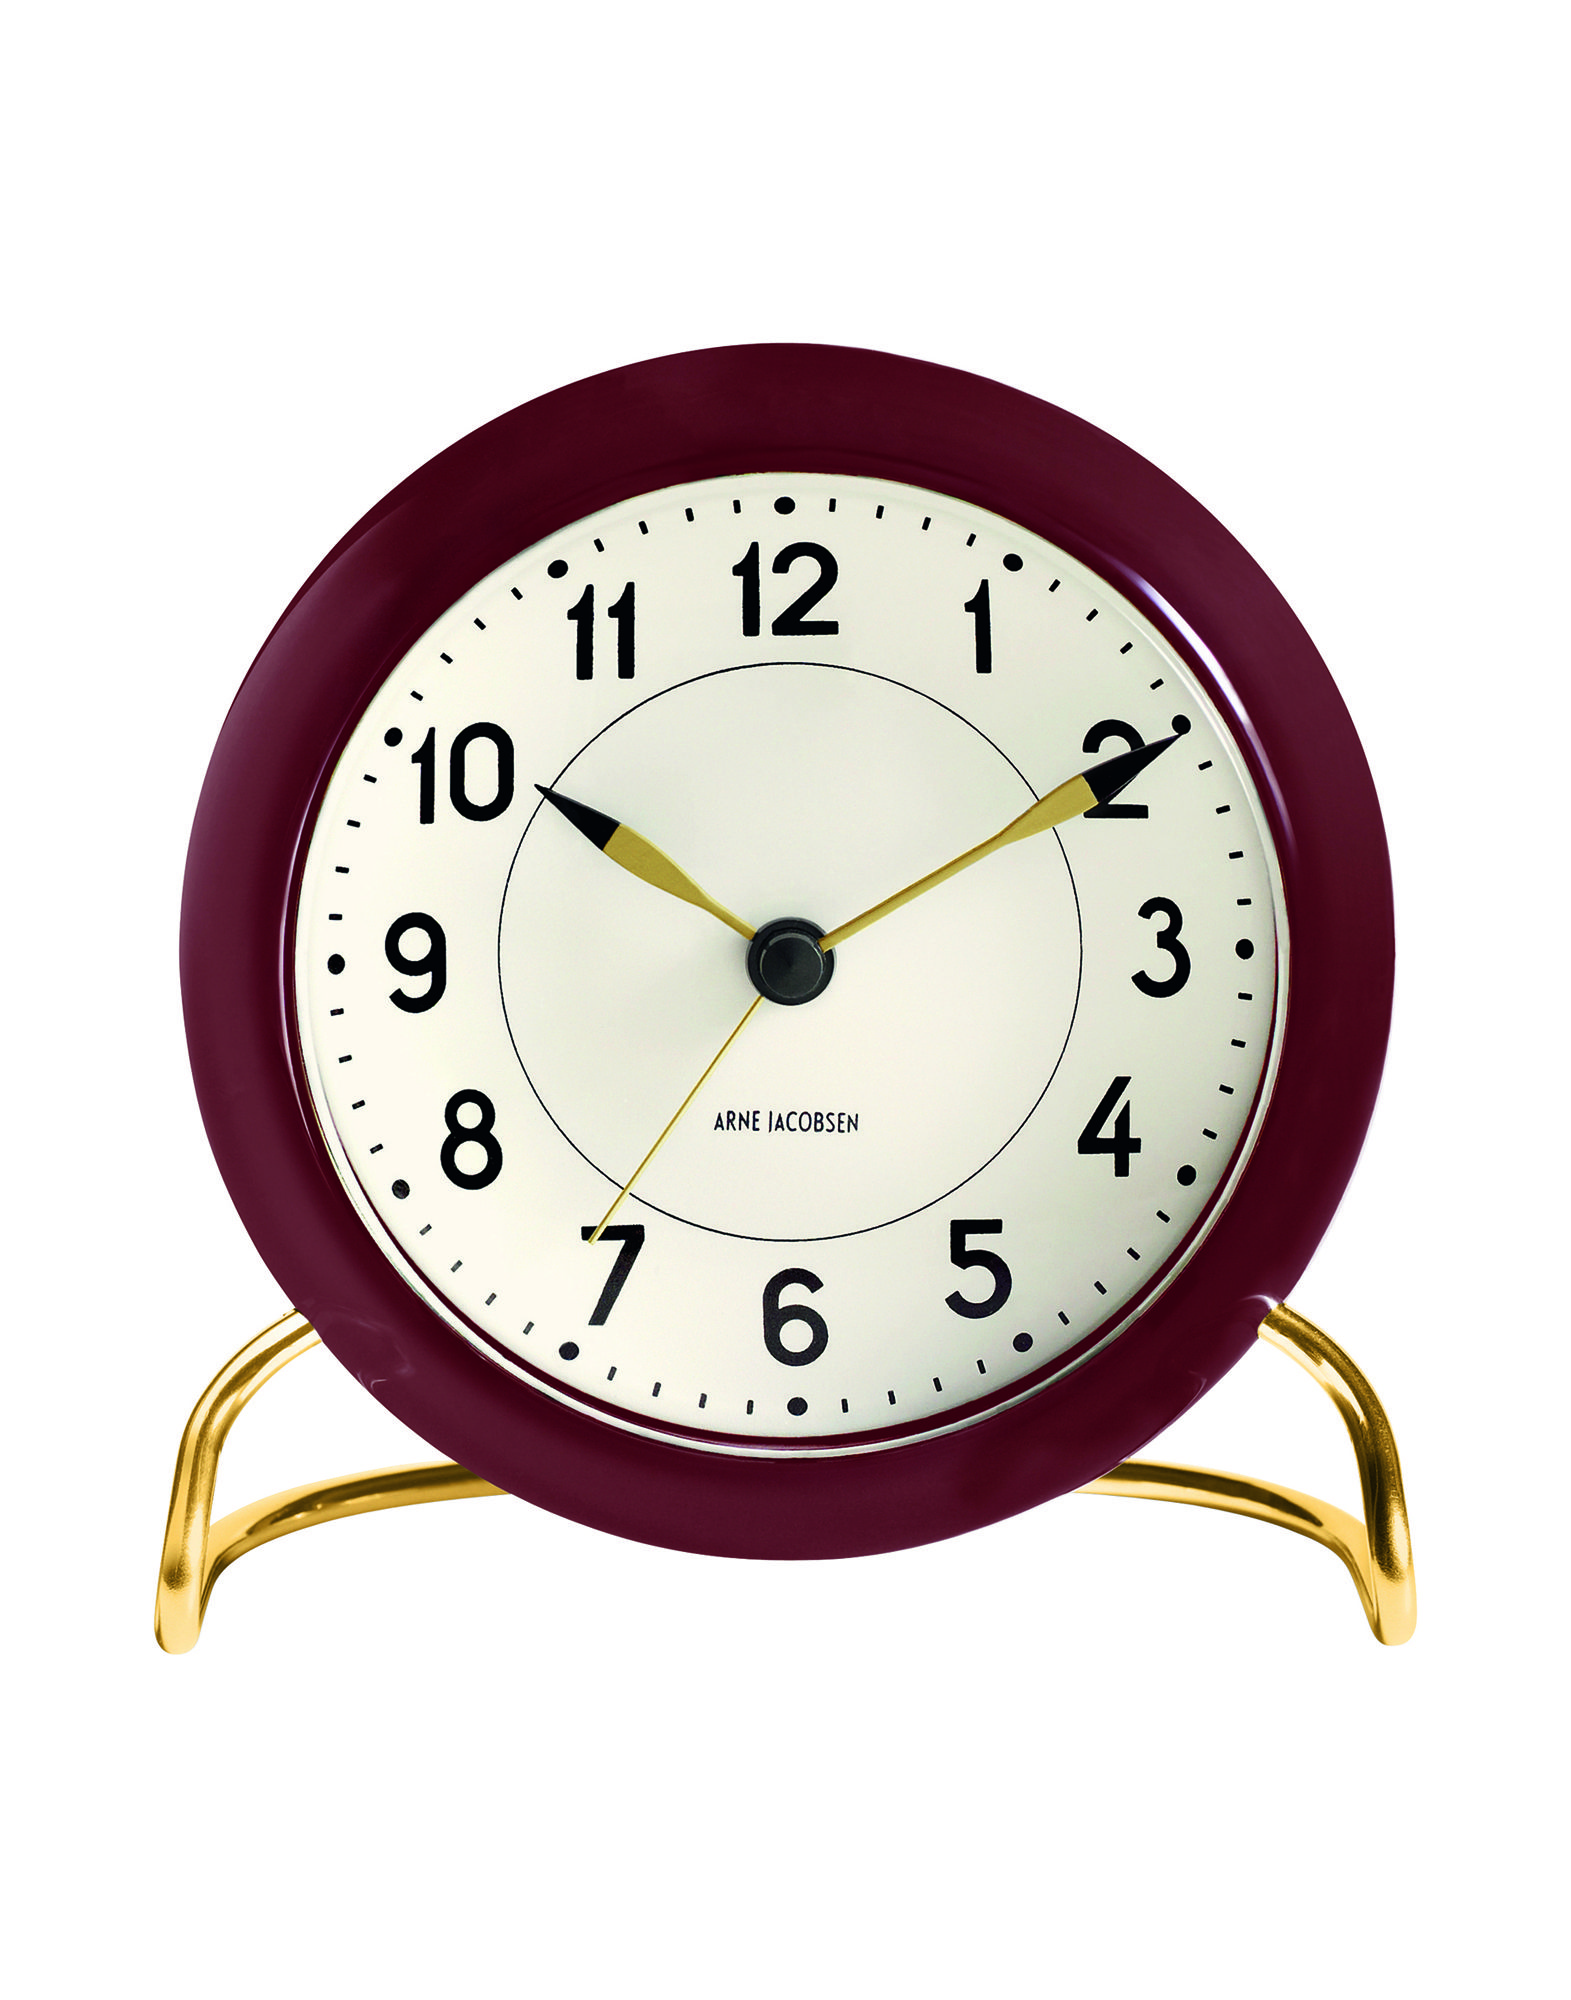 ROSENDAHL Copenhagen Table Clocks